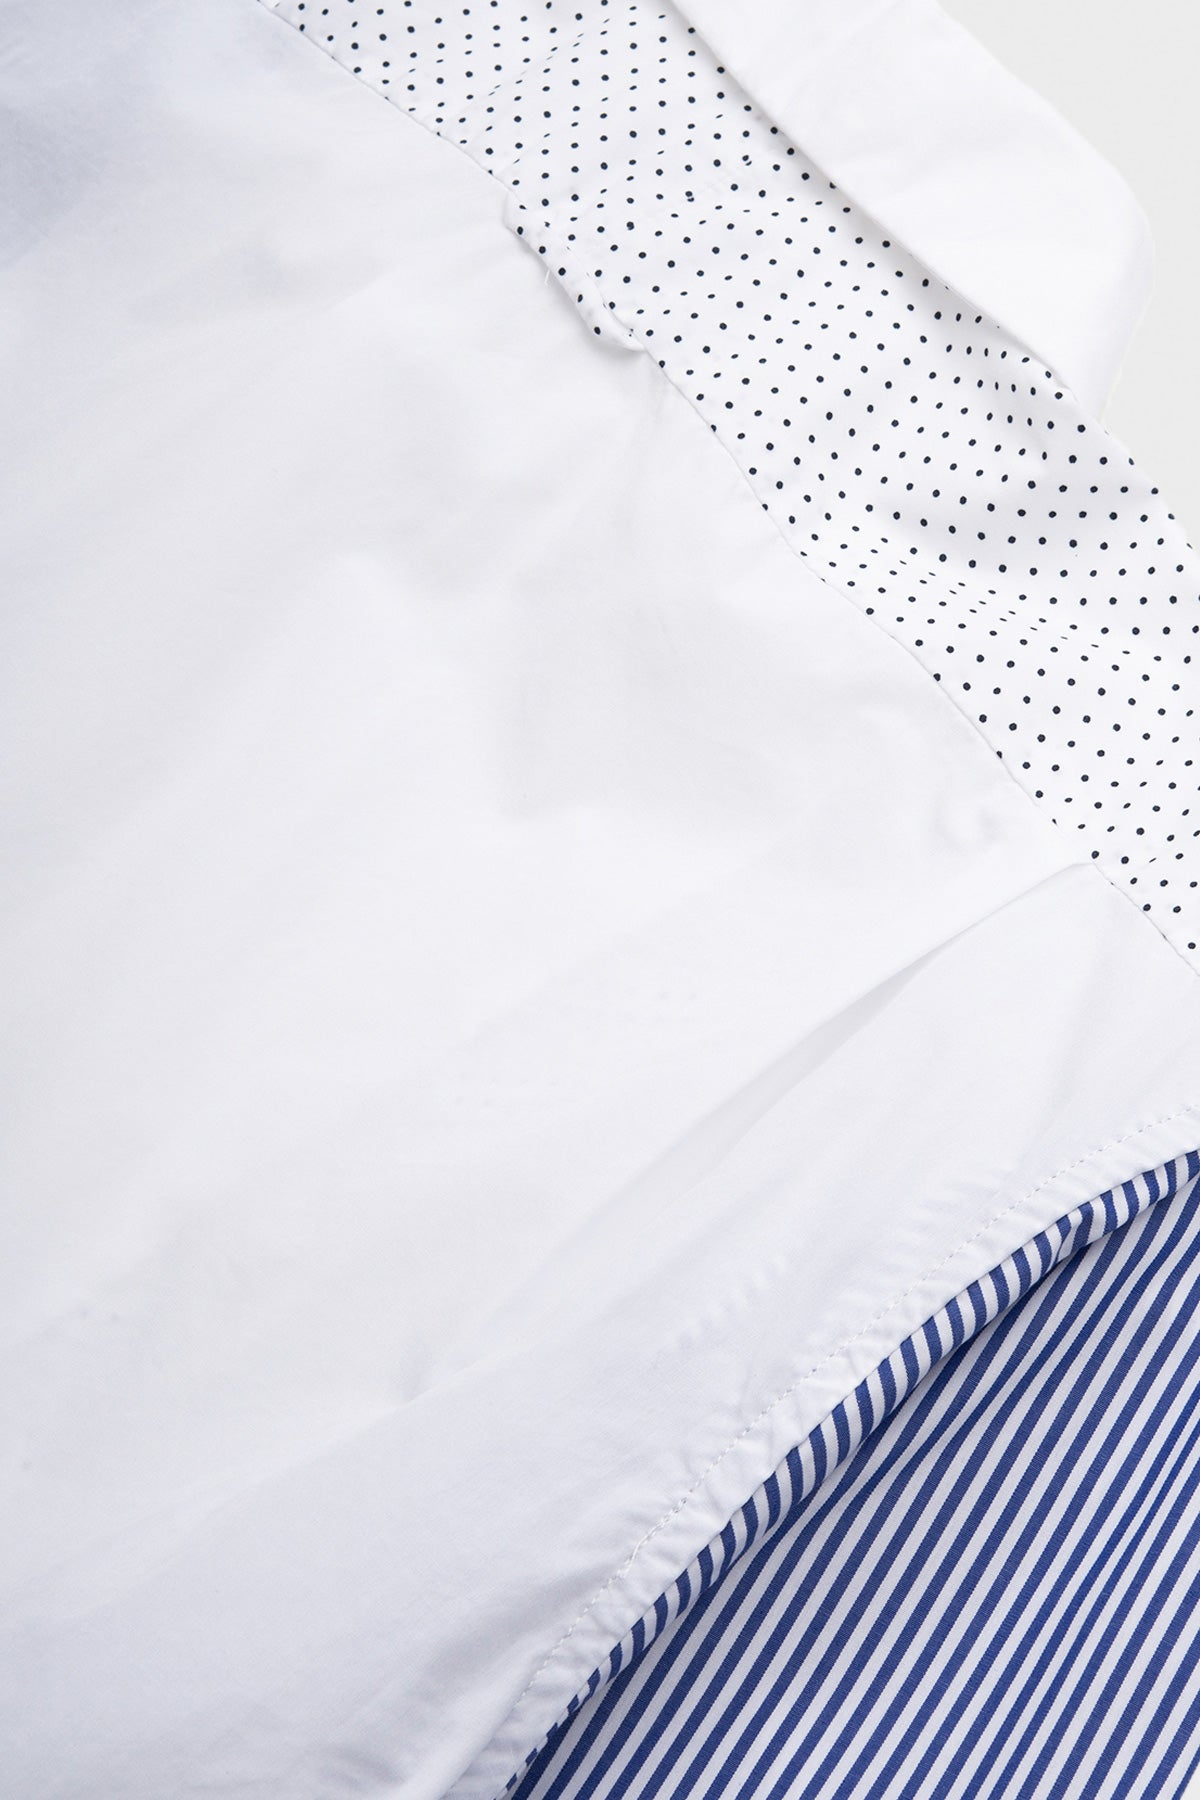 Engineered Garments - Combo Short Collar Shirt - White Broadcloth - Canoe Club